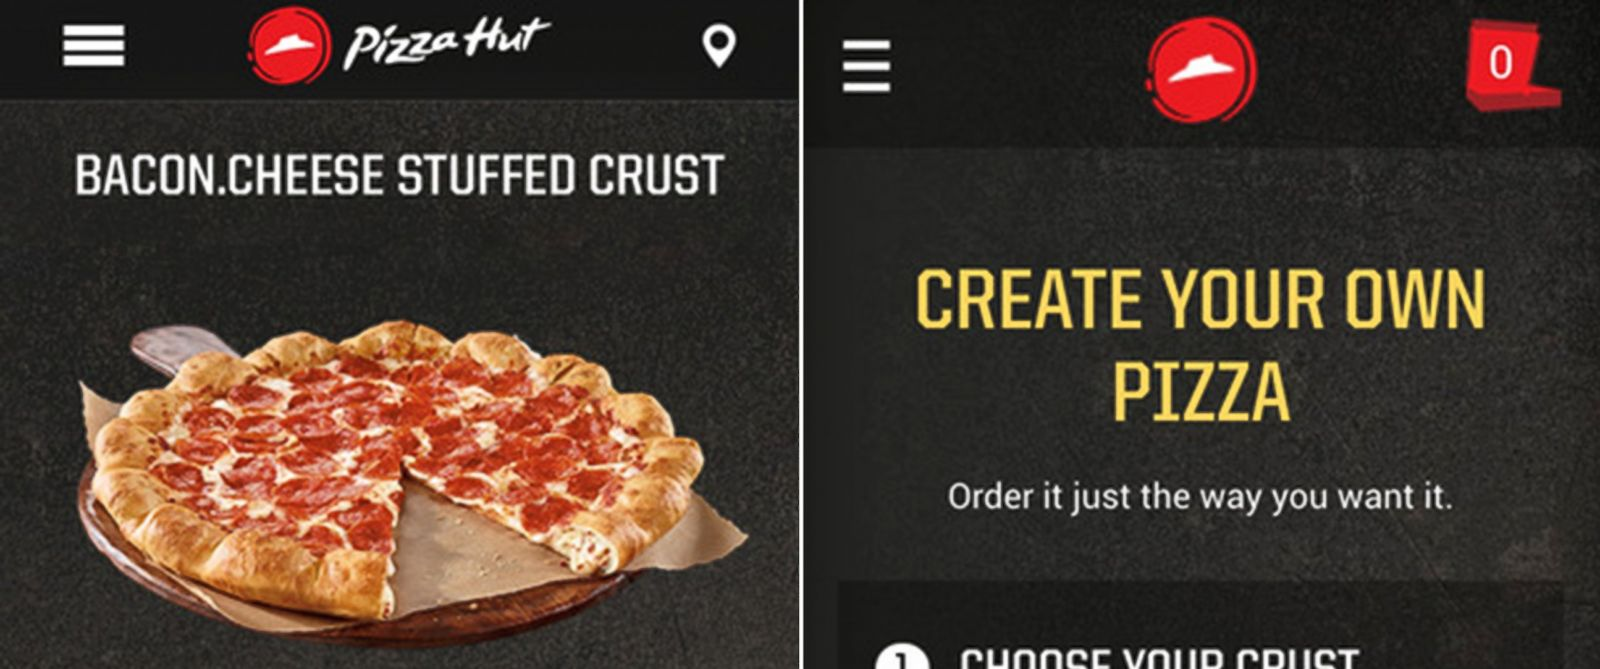 PHOTO: Screen grabs from the iTunes store show the Pizza Hut iPhone application.